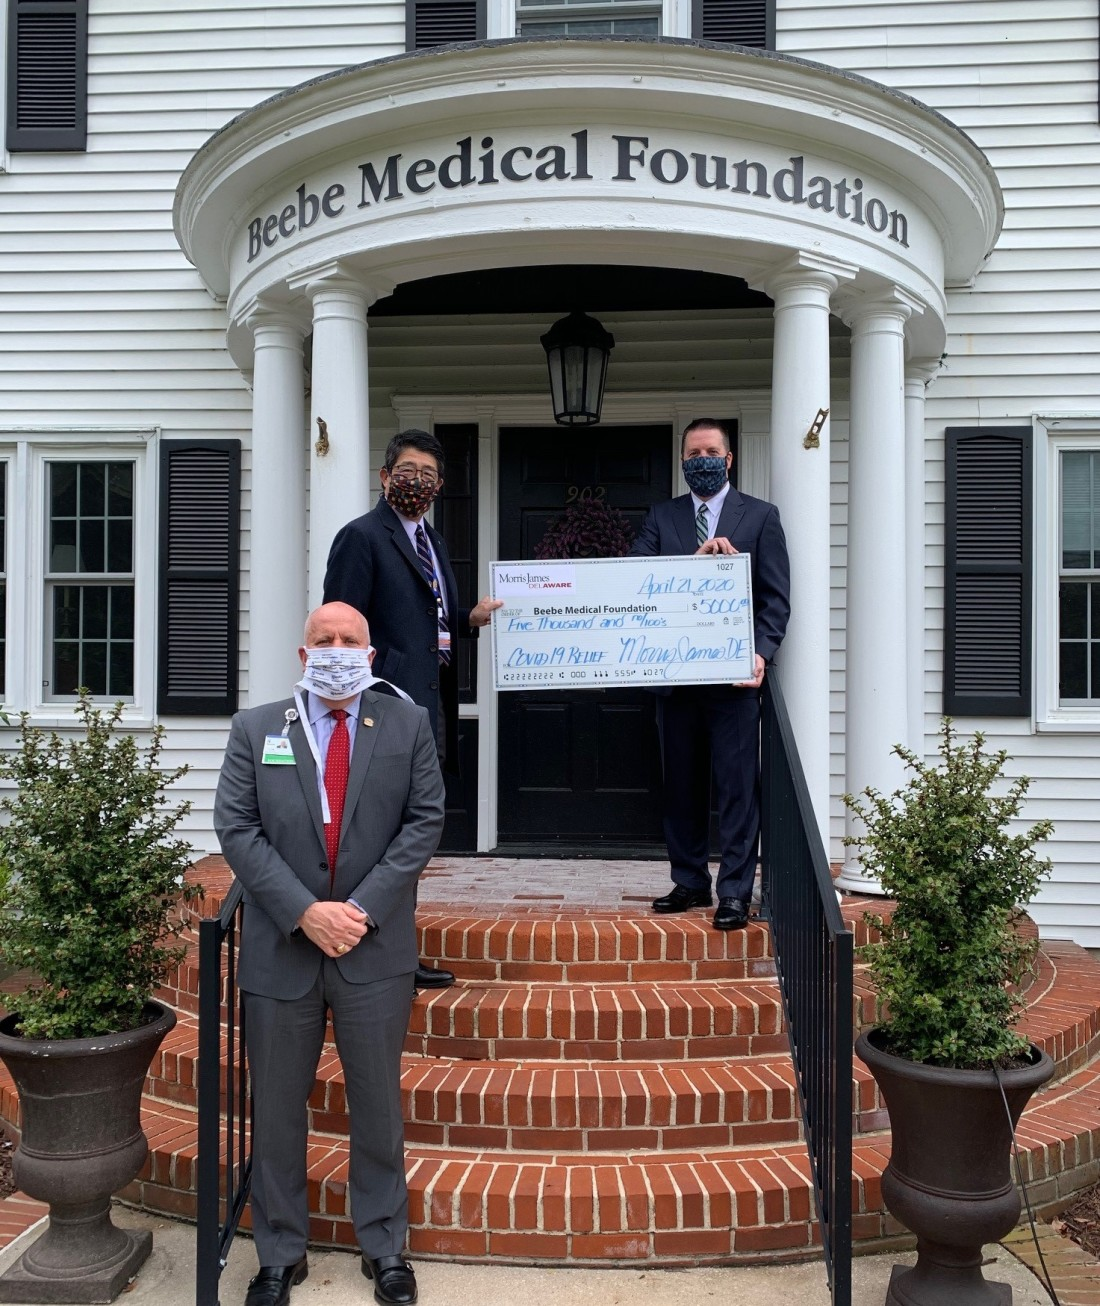 Beebe Medical Foundation Check Donation